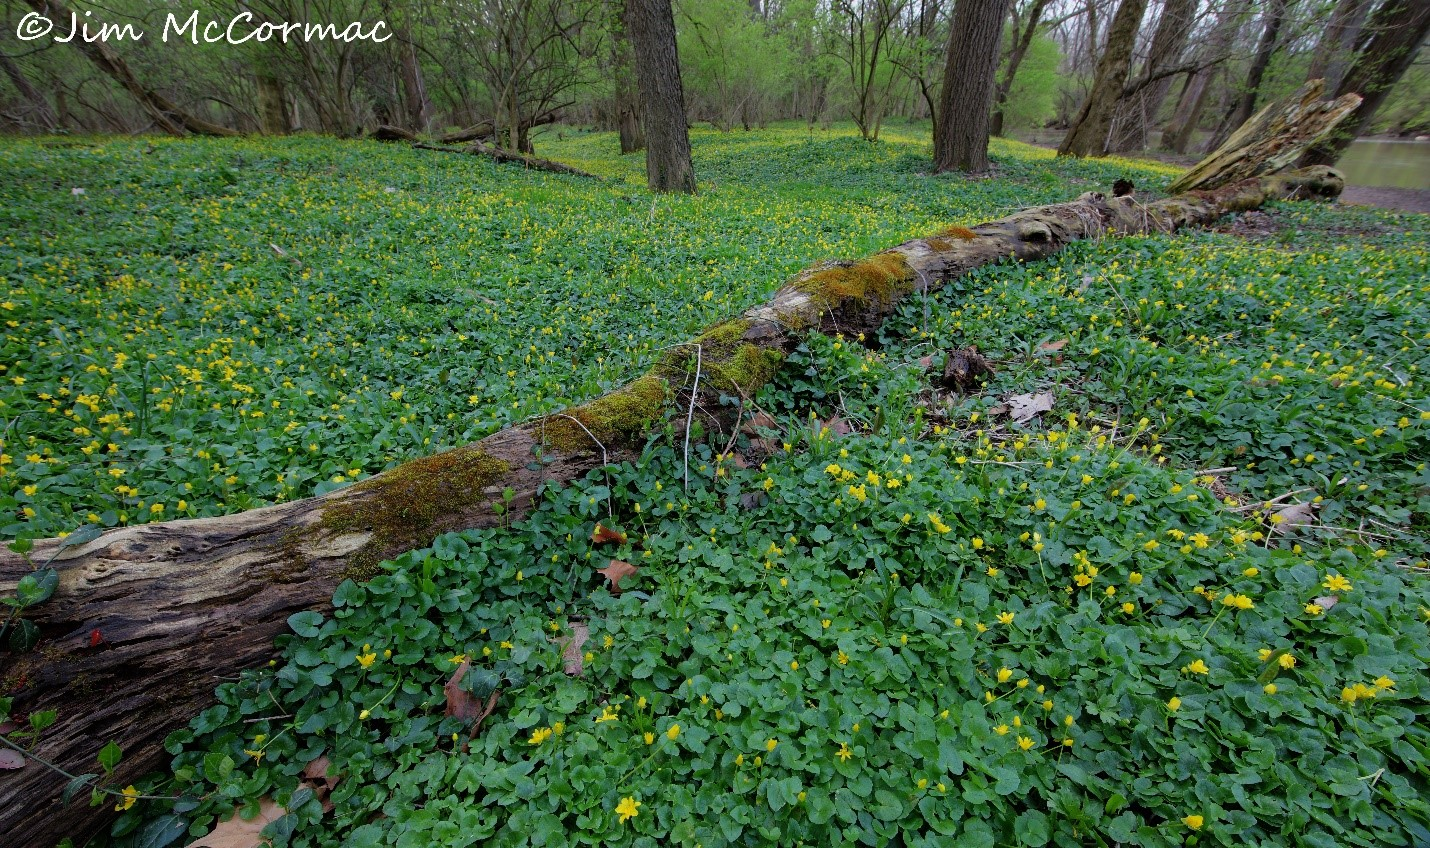 Lesser celandine a botanical disaster acres and acres of rich floodplain forest are blanketed with dense mats of a highly invasive eurasian plant the lesser celandine ficaria verna mightylinksfo